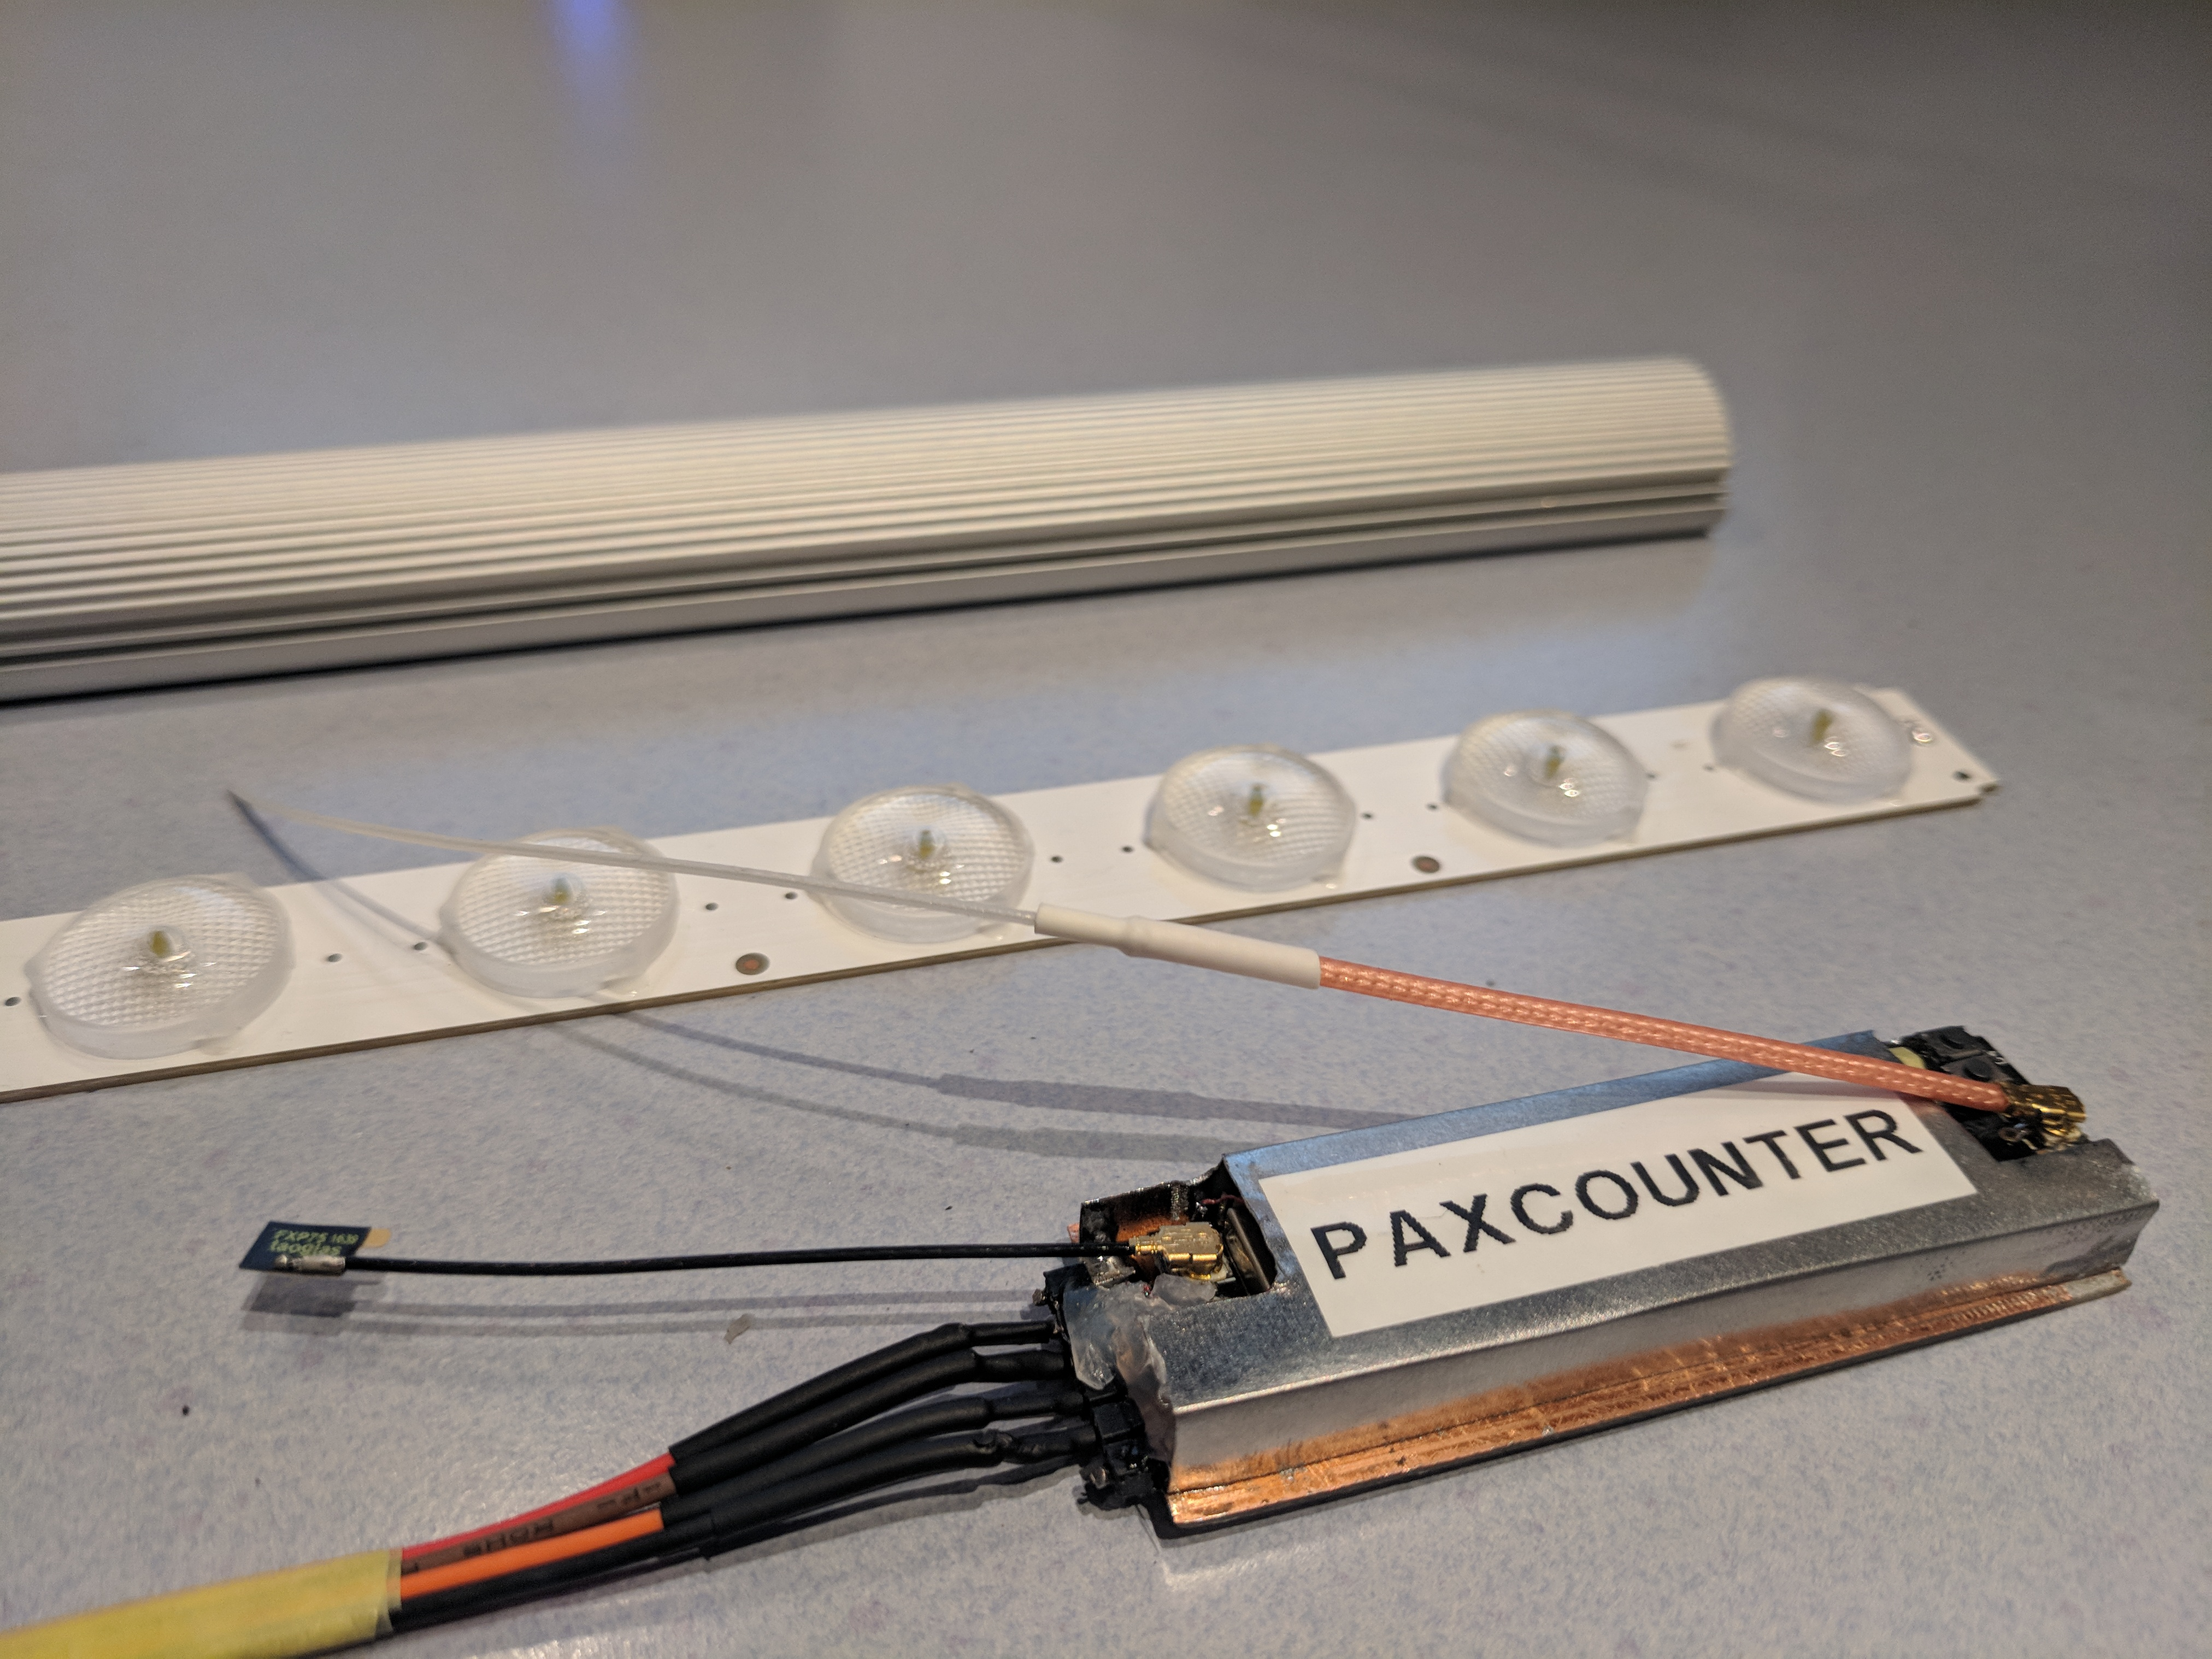 Wifi/BLE Paxcounter Project with ESP32 boards - End Devices (Nodes